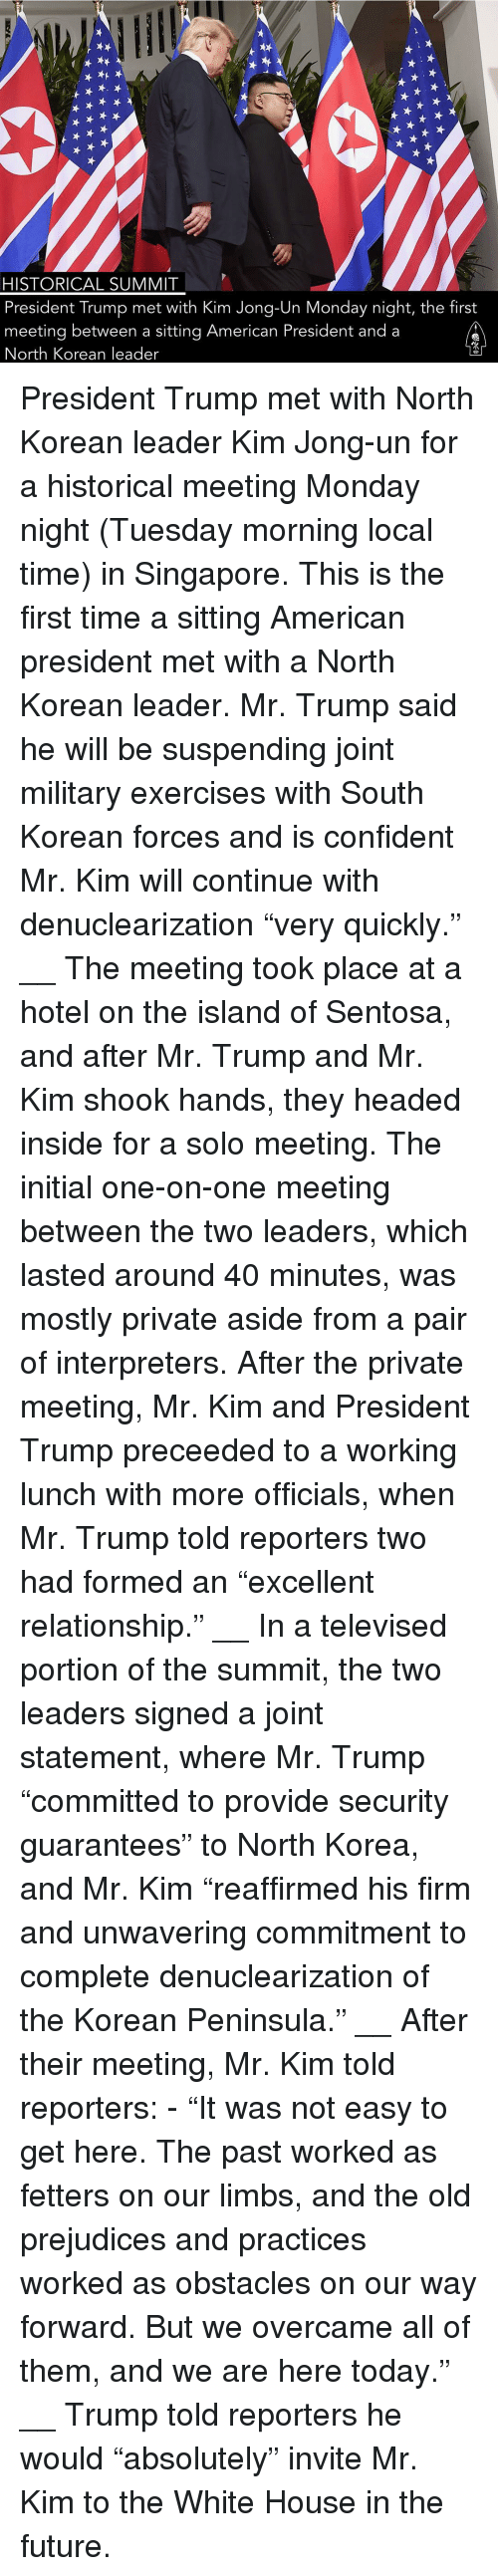 "Future, Kim Jong-Un, and Memes: HISTORICAL SUMMIT  President Trump met with Kim Jong-Un Monday night, the first  meeting between a sitting American President and a  North Korean leader President Trump met with North Korean leader Kim Jong-un for a historical meeting Monday night (Tuesday morning local time) in Singapore. This is the first time a sitting American president met with a North Korean leader. Mr. Trump said he will be suspending joint military exercises with South Korean forces and is confident Mr. Kim will continue with denuclearization ""very quickly."" __ The meeting took place at a hotel on the island of Sentosa, and after Mr. Trump and Mr. Kim shook hands, they headed inside for a solo meeting. The initial one-on-one meeting between the two leaders, which lasted around 40 minutes, was mostly private aside from a pair of interpreters. After the private meeting, Mr. Kim and President Trump preceeded to a working lunch with more officials, when Mr. Trump told reporters two had formed an ""excellent relationship."" __ In a televised portion of the summit, the two leaders signed a joint statement, where Mr. Trump ""committed to provide security guarantees"" to North Korea, and Mr. Kim ""reaffirmed his firm and unwavering commitment to complete denuclearization of the Korean Peninsula."" __ After their meeting, Mr. Kim told reporters: - ""It was not easy to get here. The past worked as fetters on our limbs, and the old prejudices and practices worked as obstacles on our way forward. But we overcame all of them, and we are here today."" __ Trump told reporters he would ""absolutely"" invite Mr. Kim to the White House in the future."